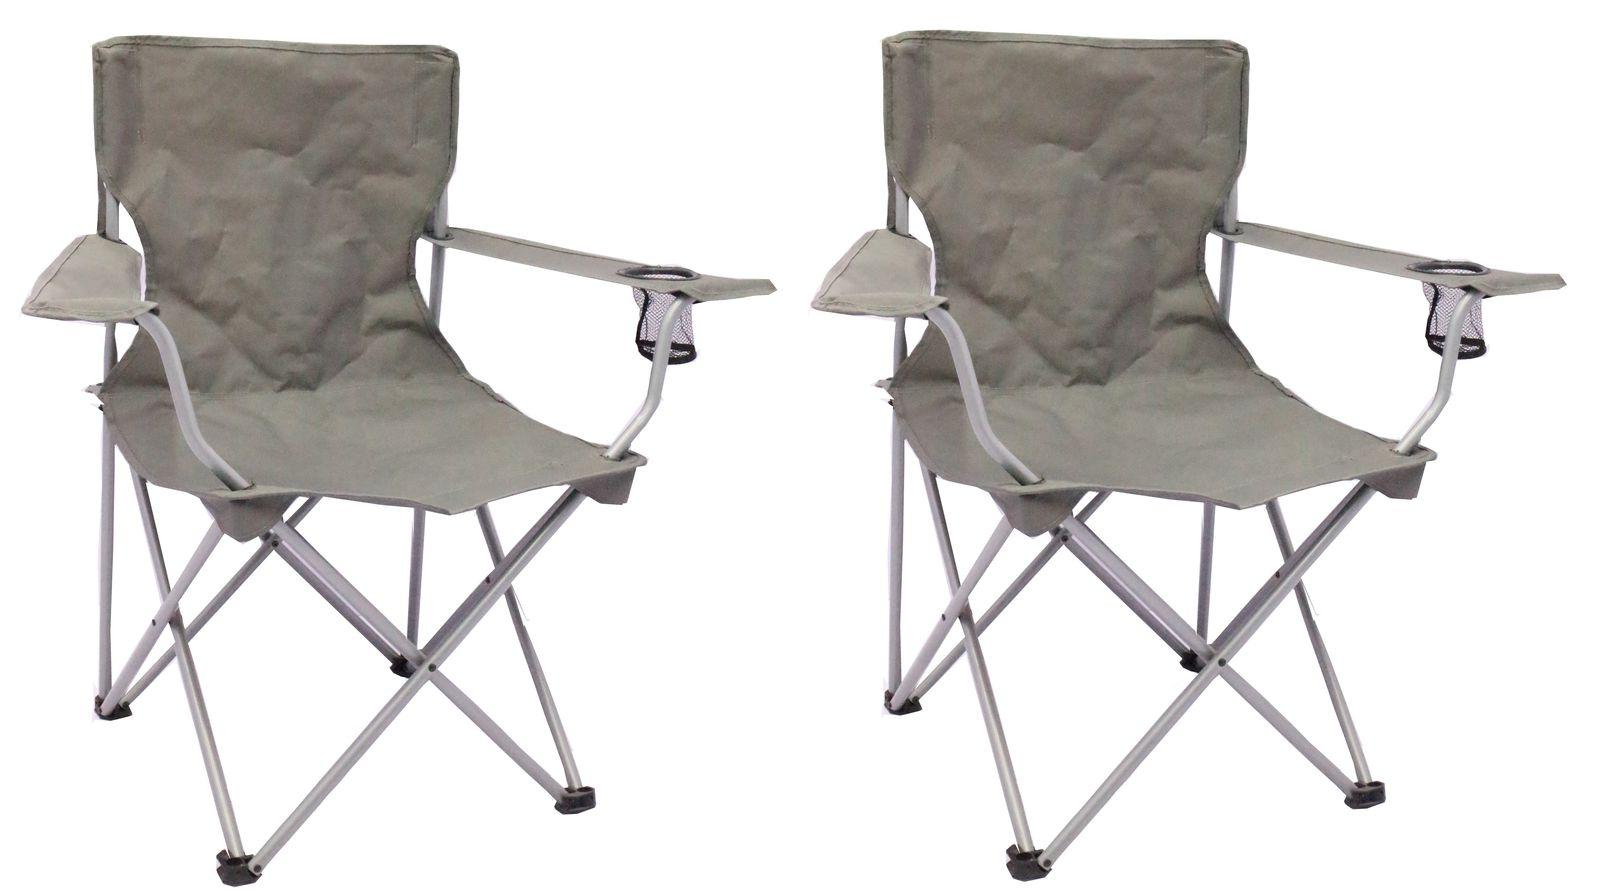 Folding Outdoor Seat Fishing Picnic Beach Lawn